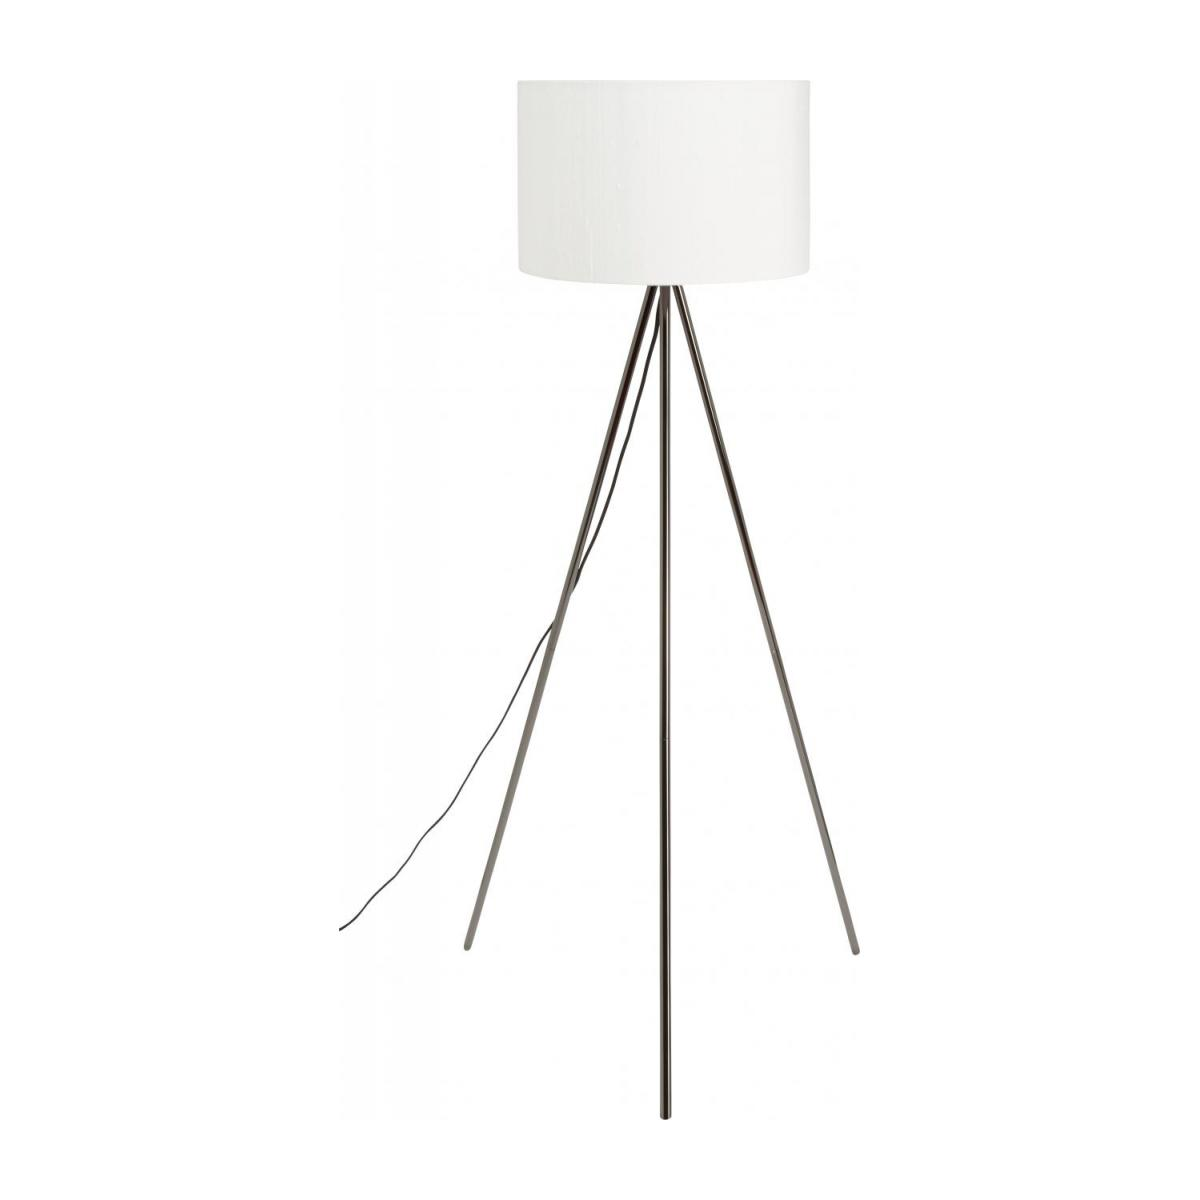 Metal floor lamp base tripod, black n°2